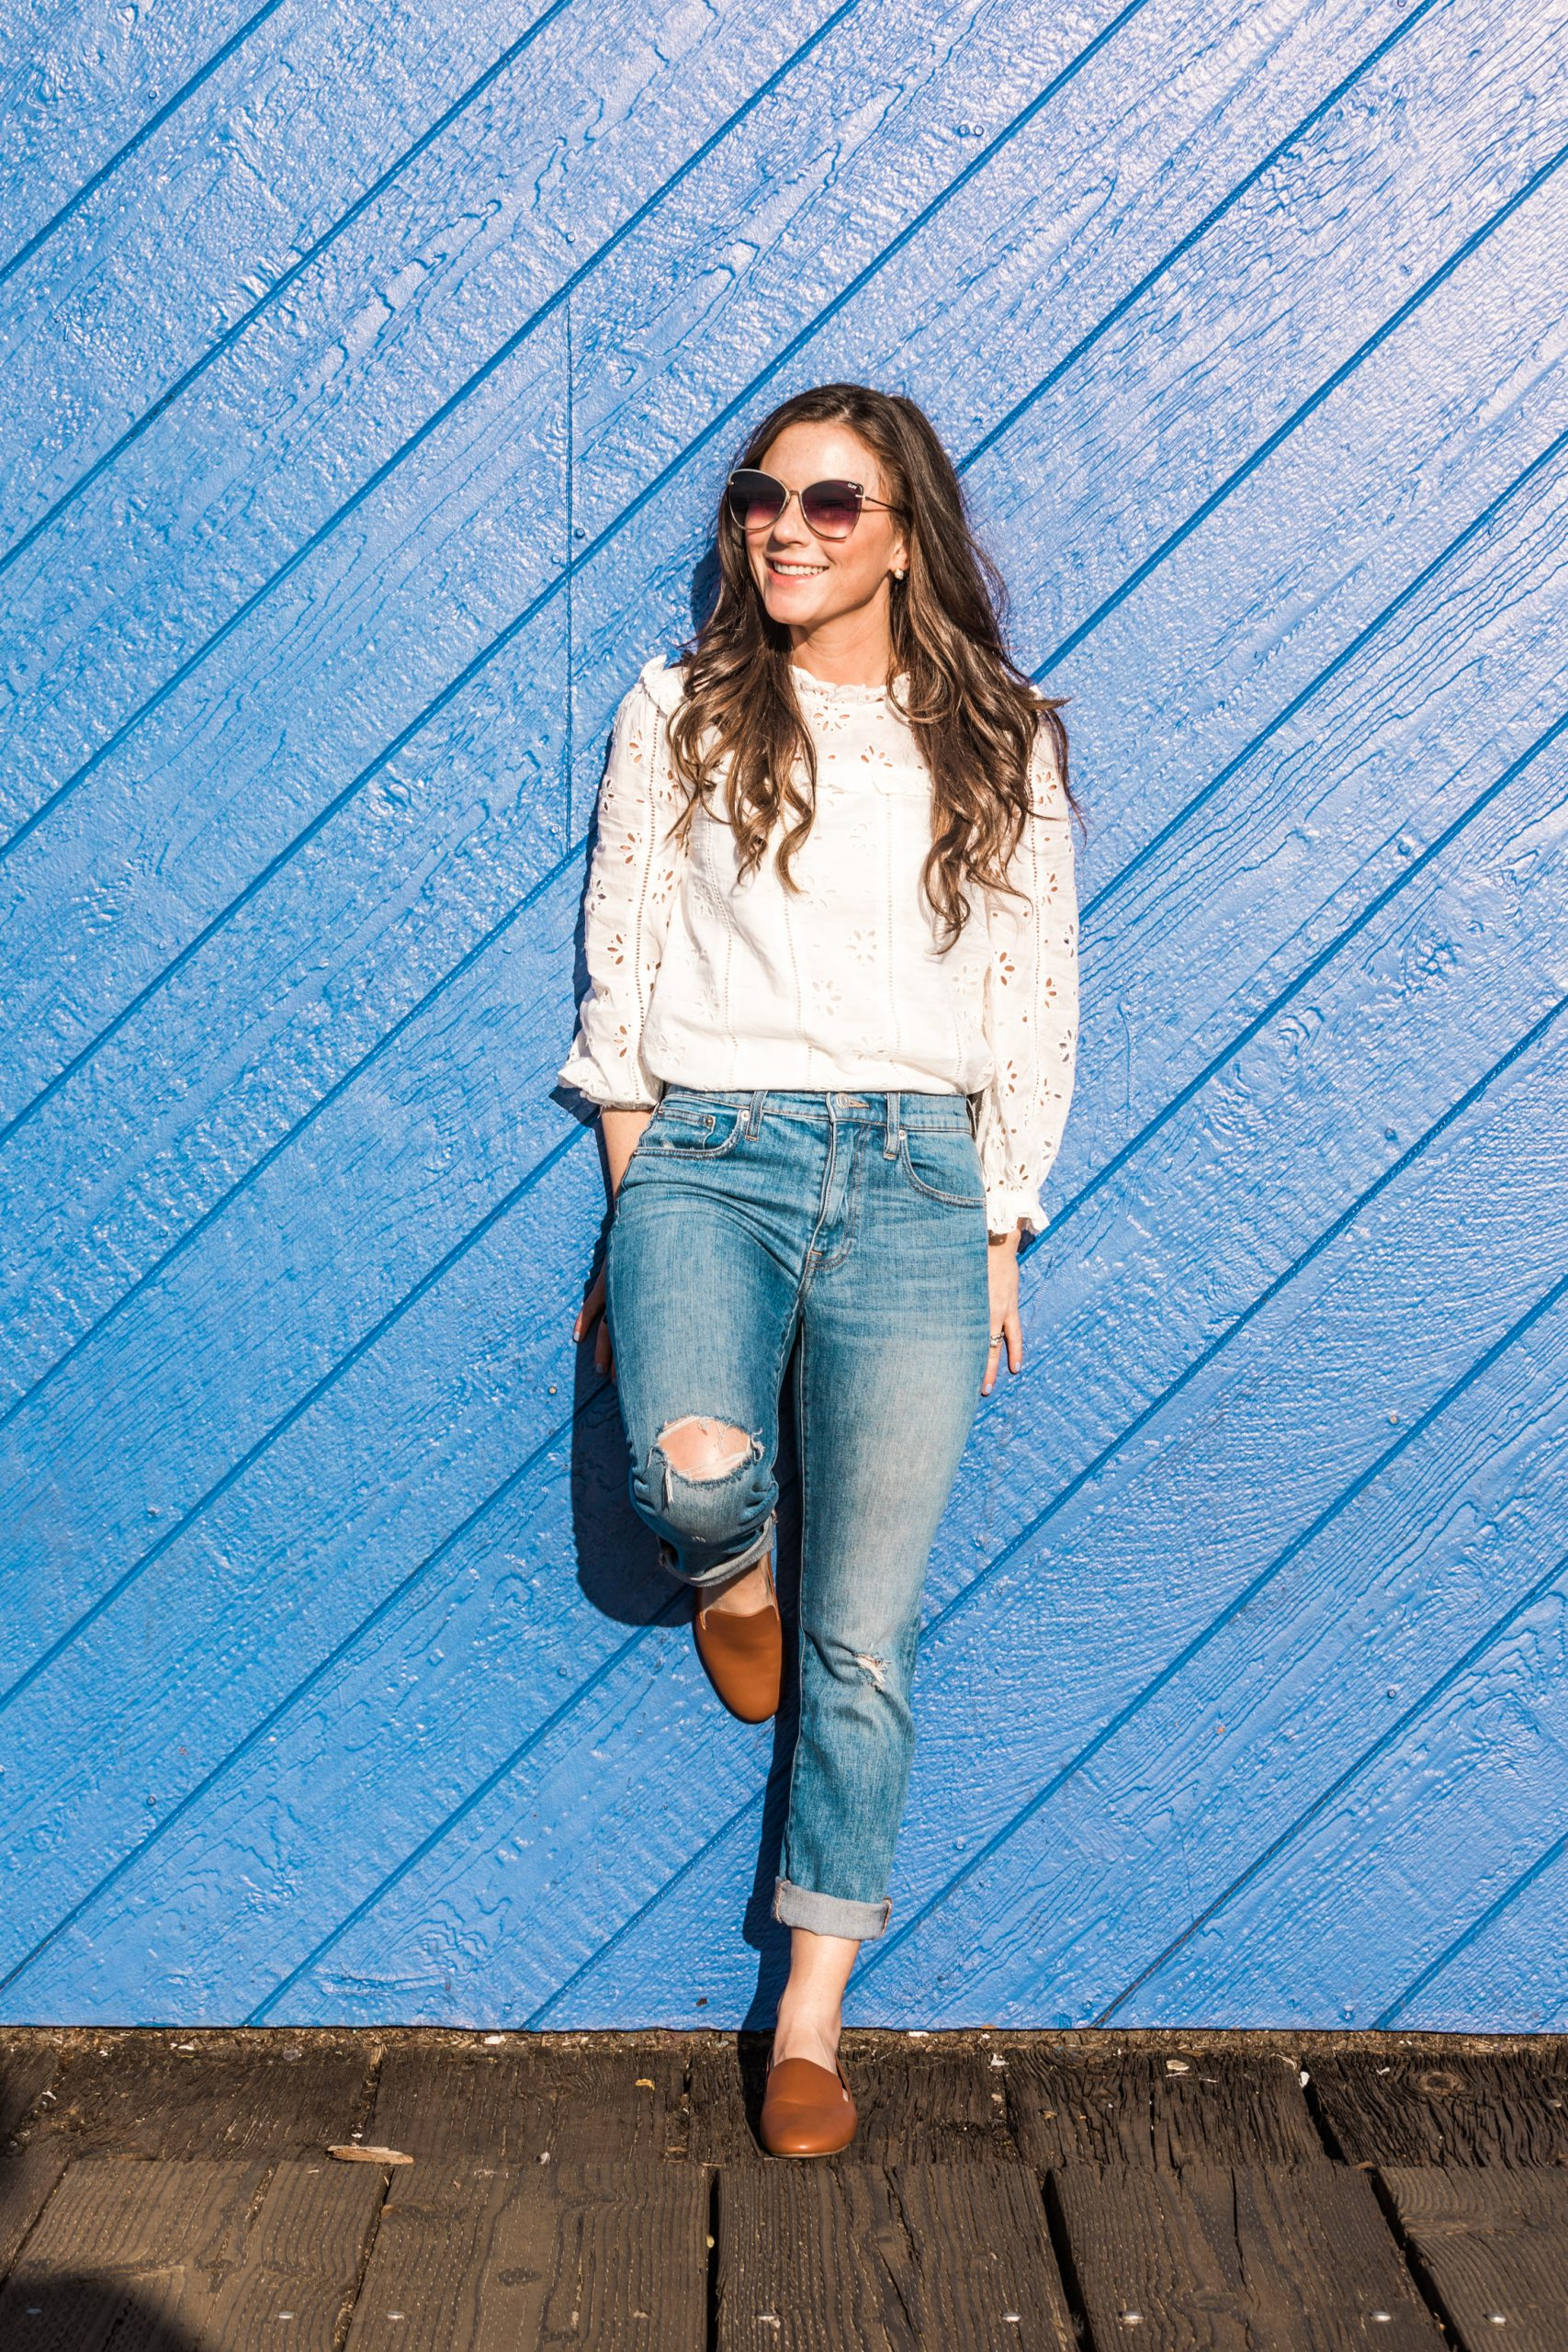 Woman standing in front of blue wall smiling wearing an eyelet shirt jeans and brown leather shoes